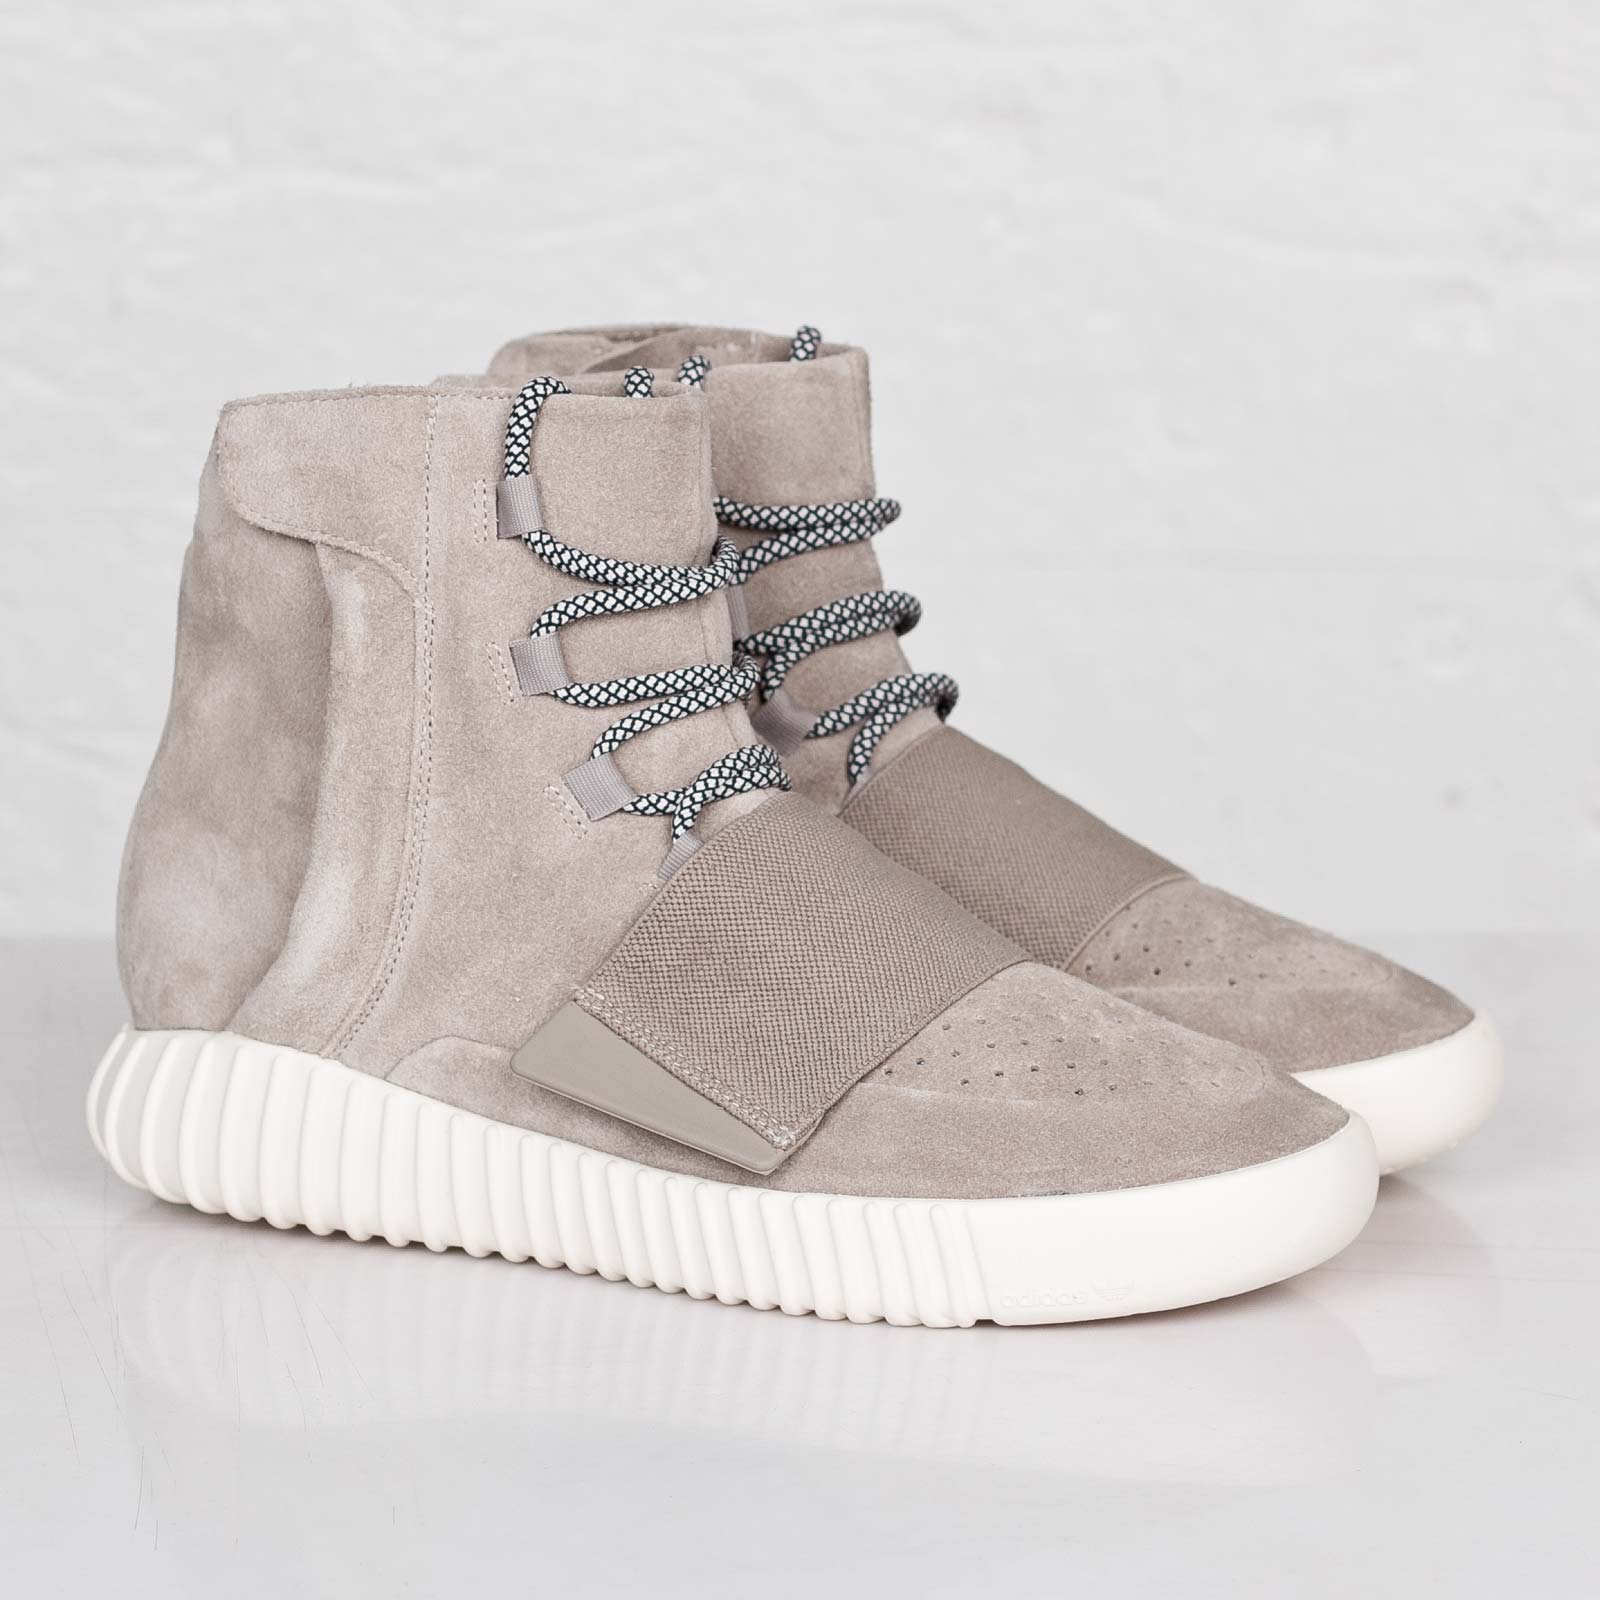 Adidas Yeezy 750 For Sale